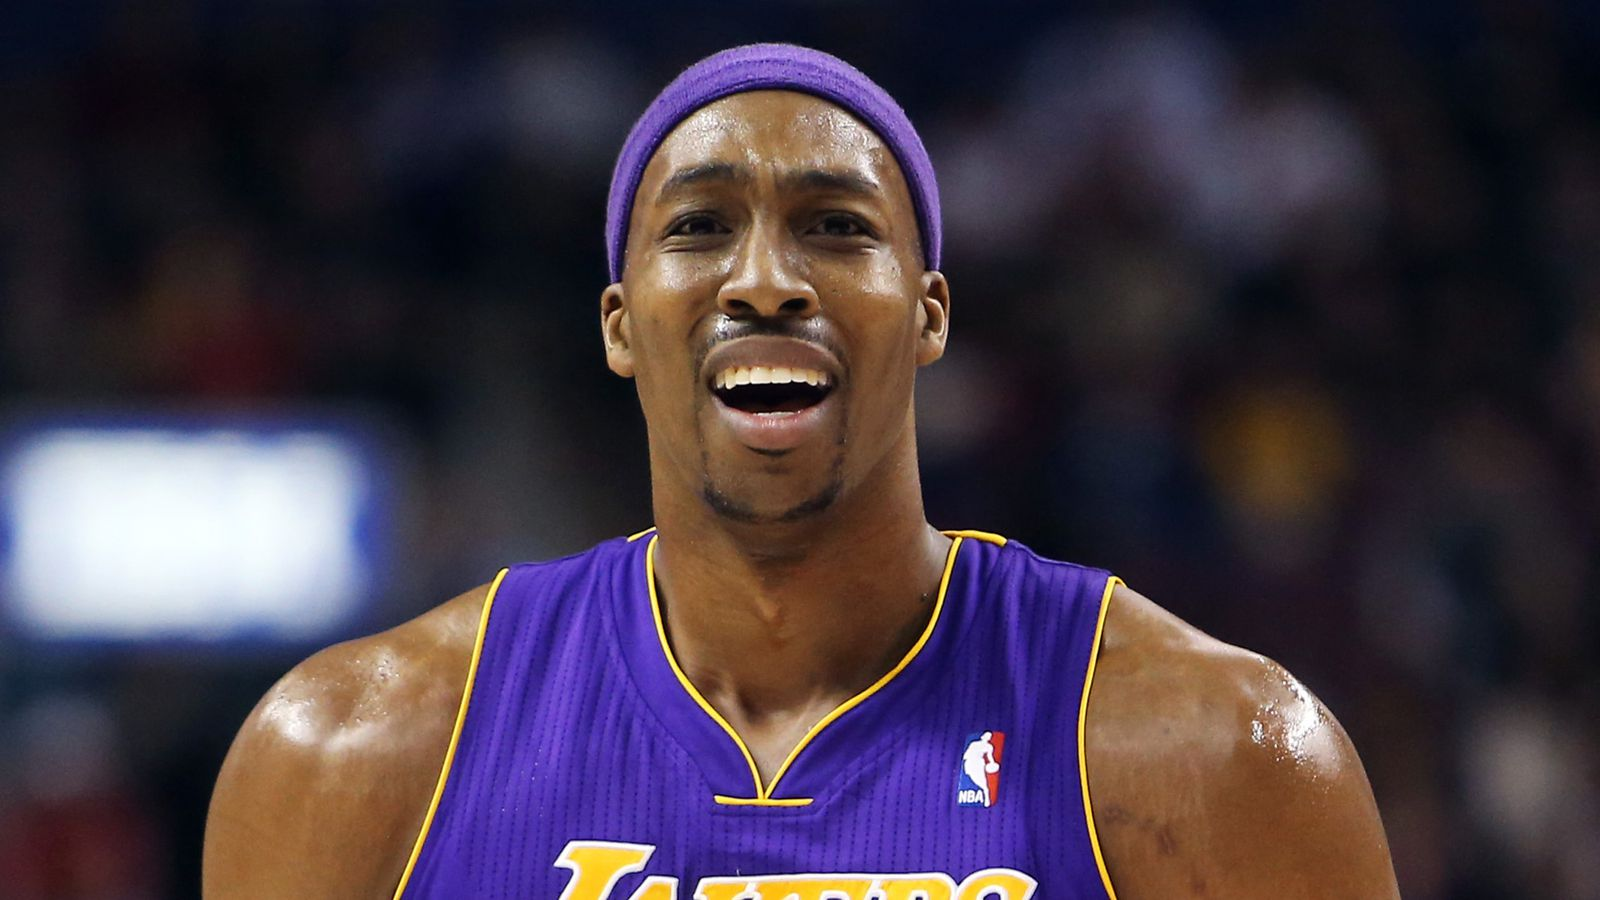 Dwight Howard trade rumors have started up again